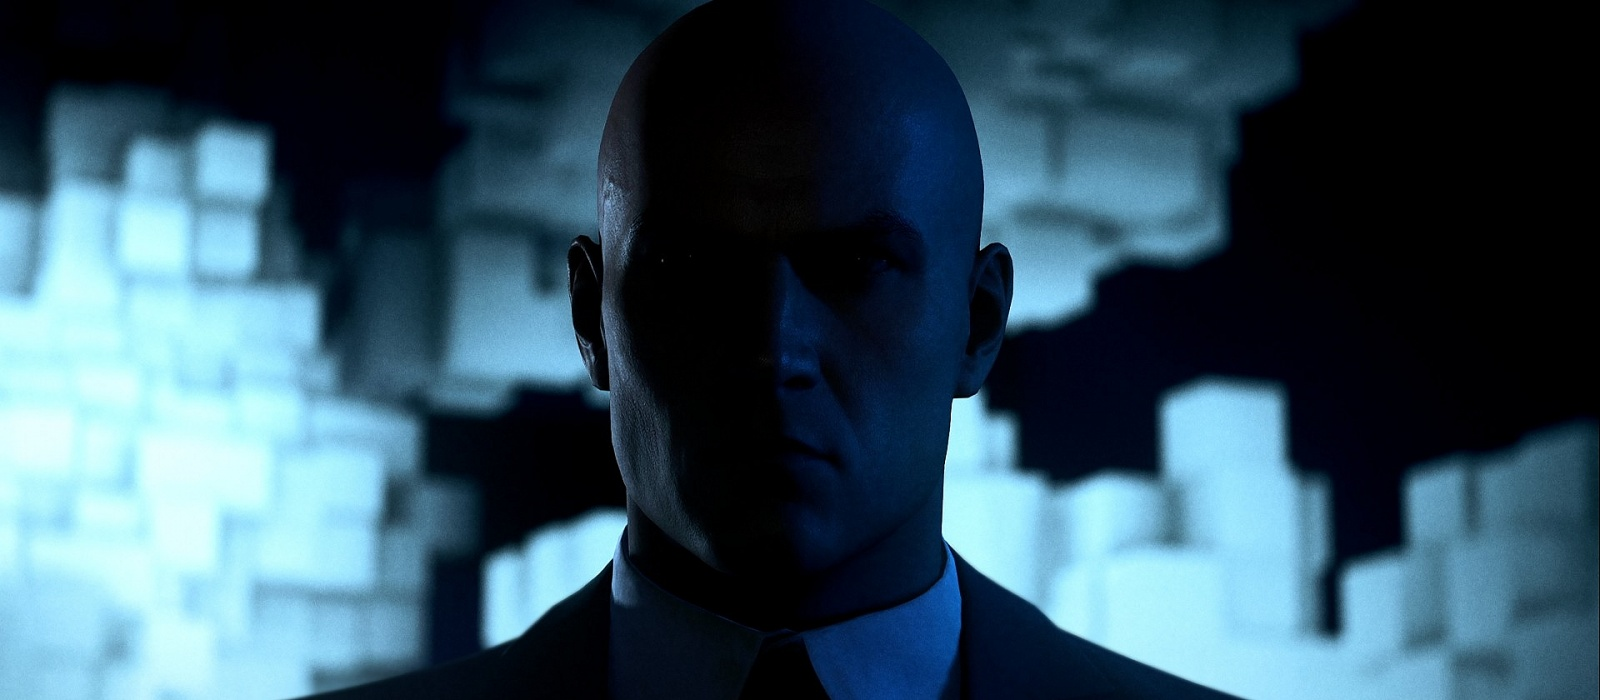 Does Hitman 3 have multiplayer and VR? What game modes are available in the game